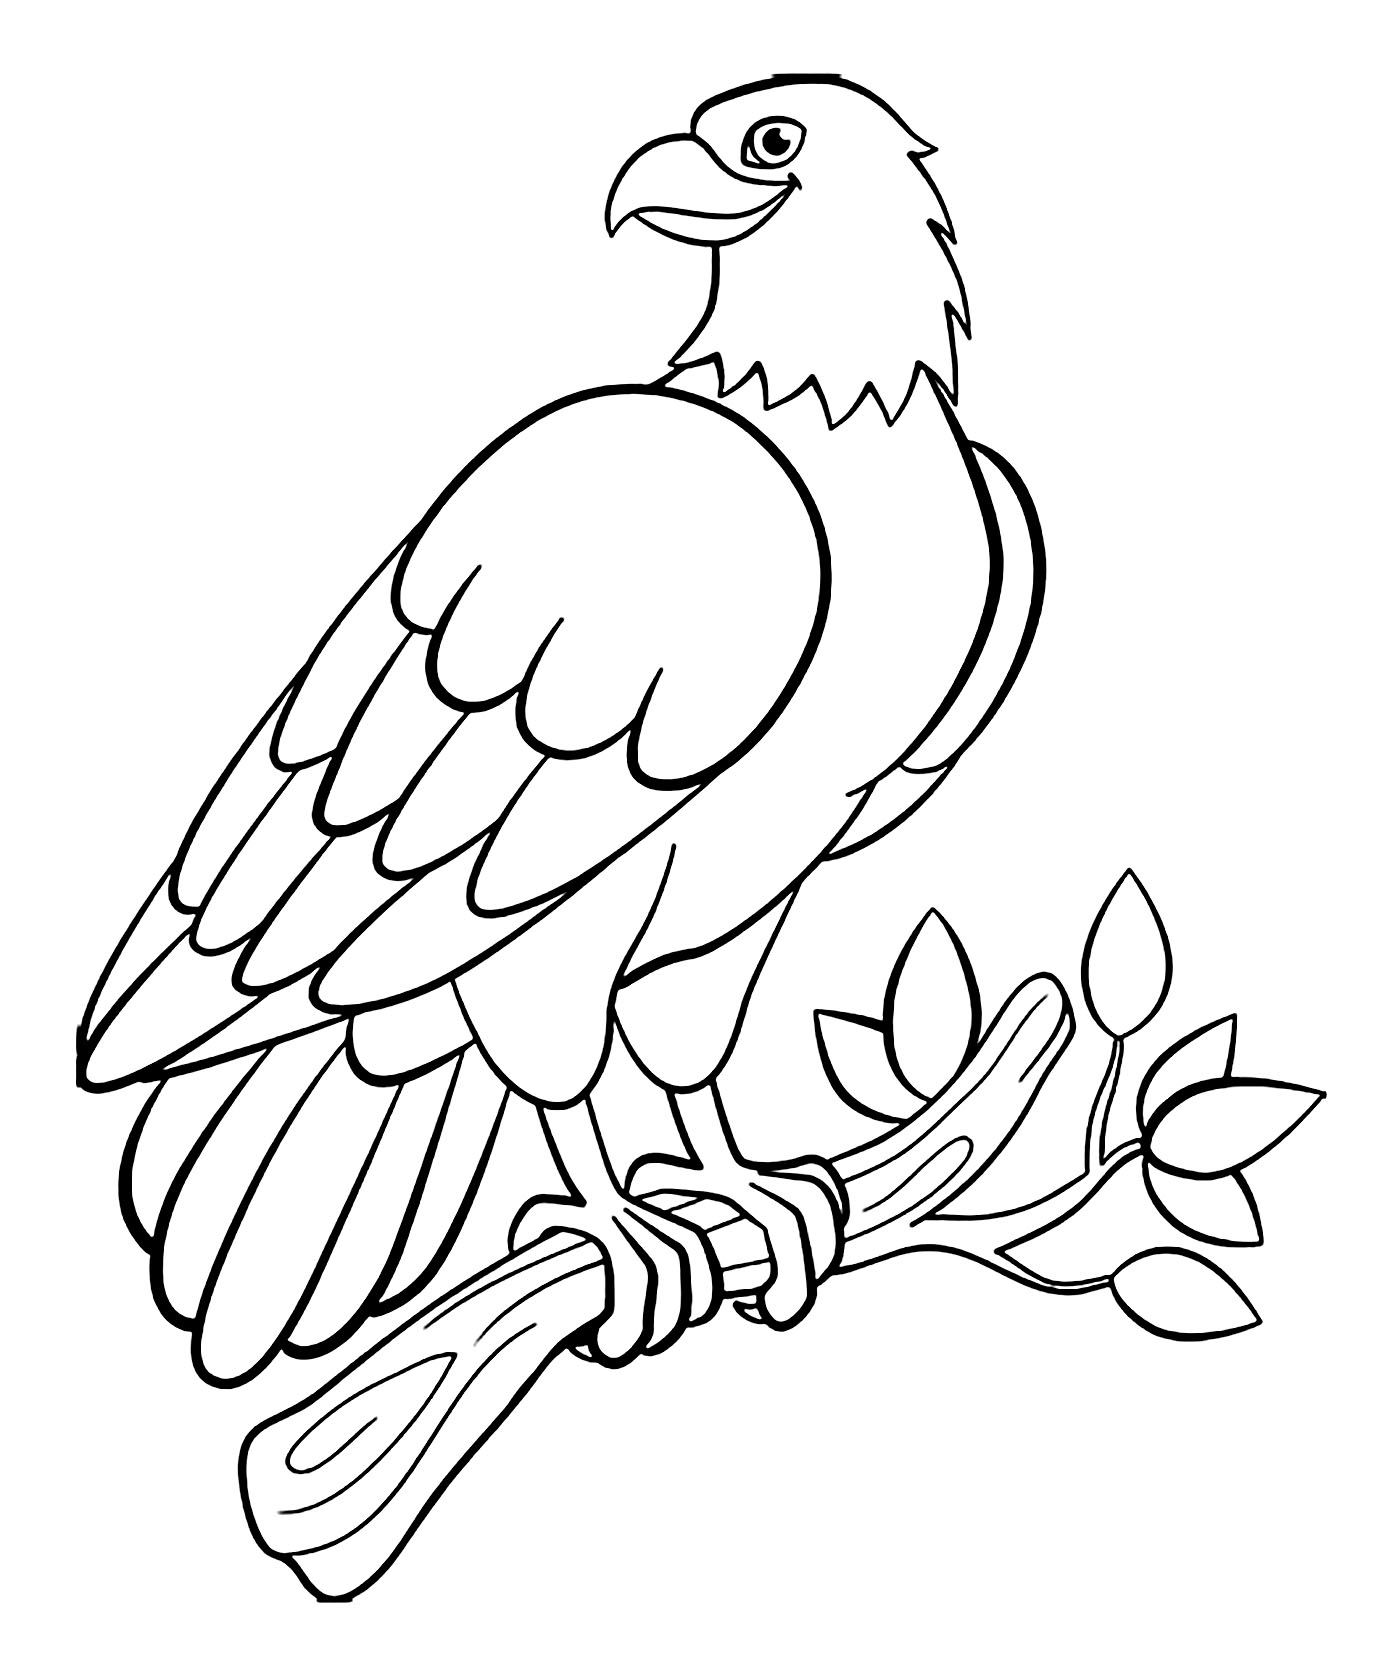 Birds to print - Birds Kids Coloring Pages